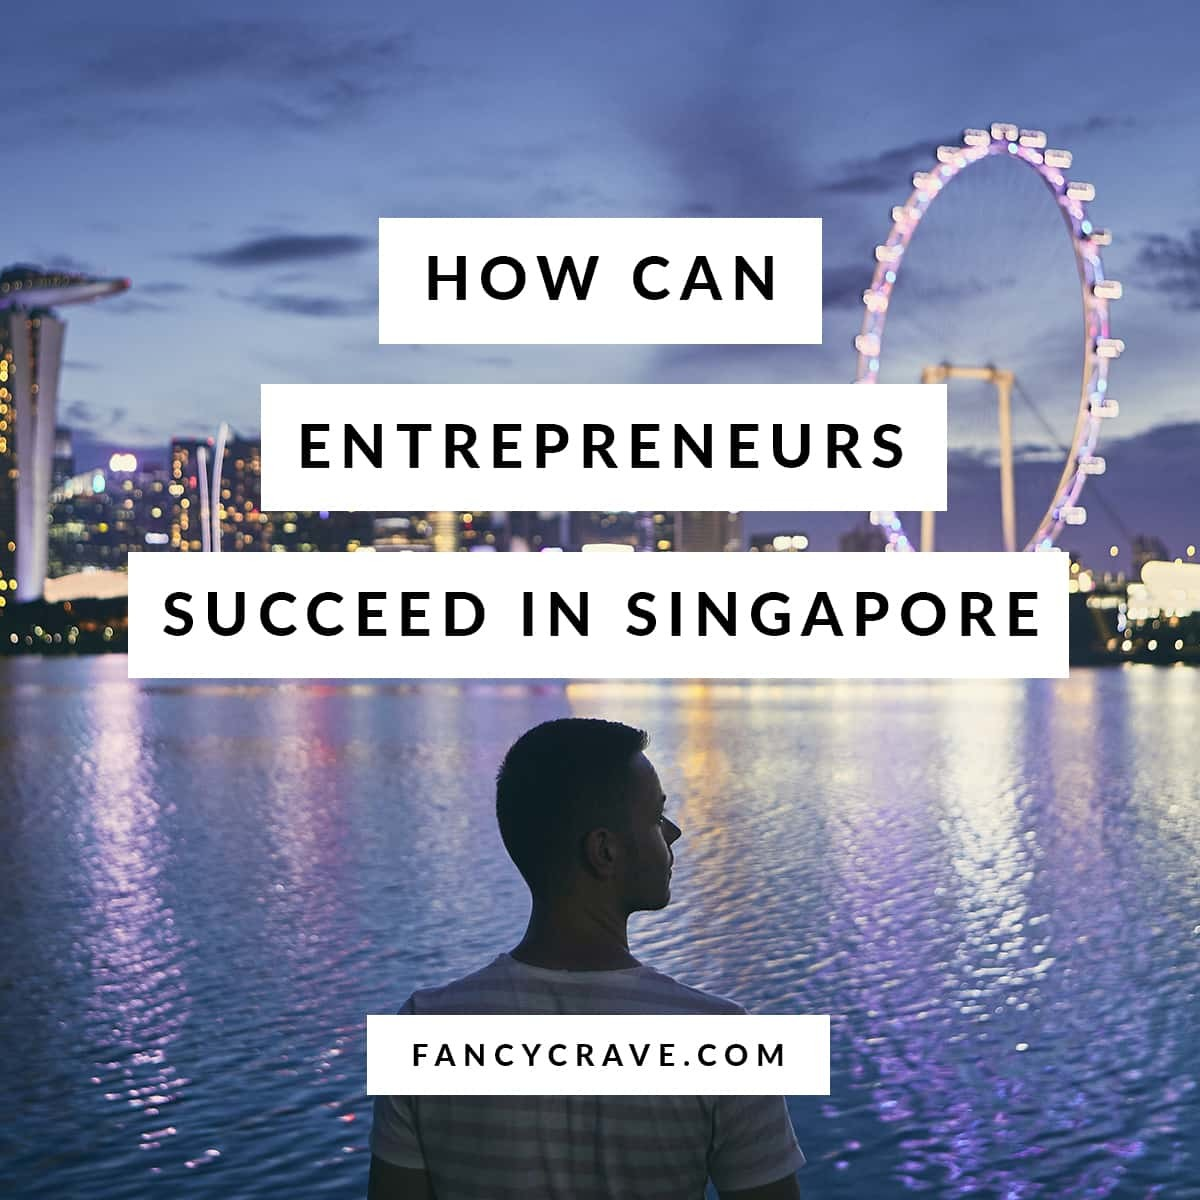 How can Entrepreneurs Succeed in Singapore